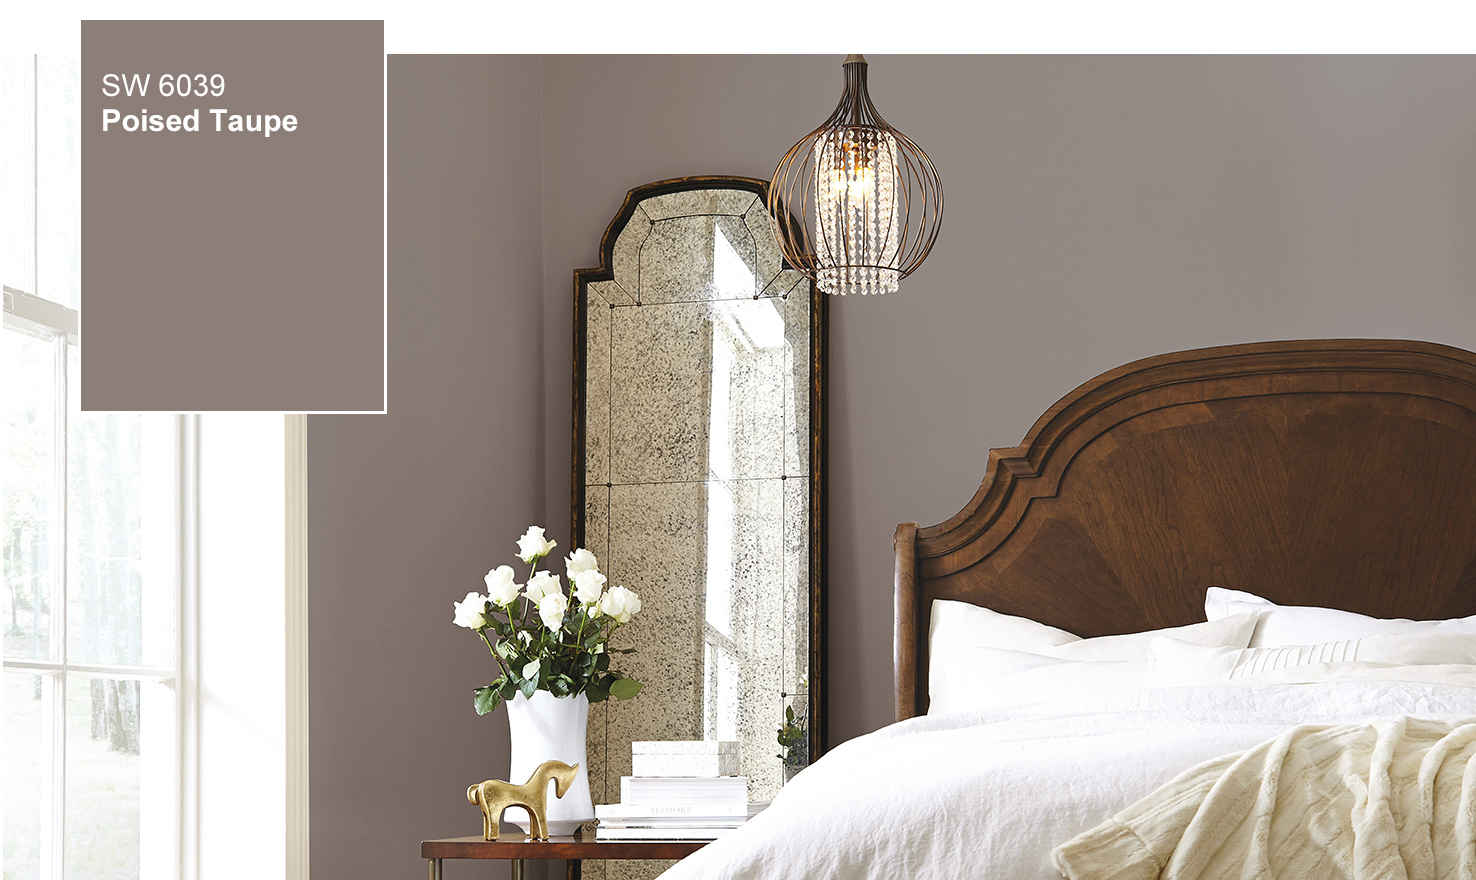 Sherwin Williams Selects Poised Taupe As 2017 Color Of The